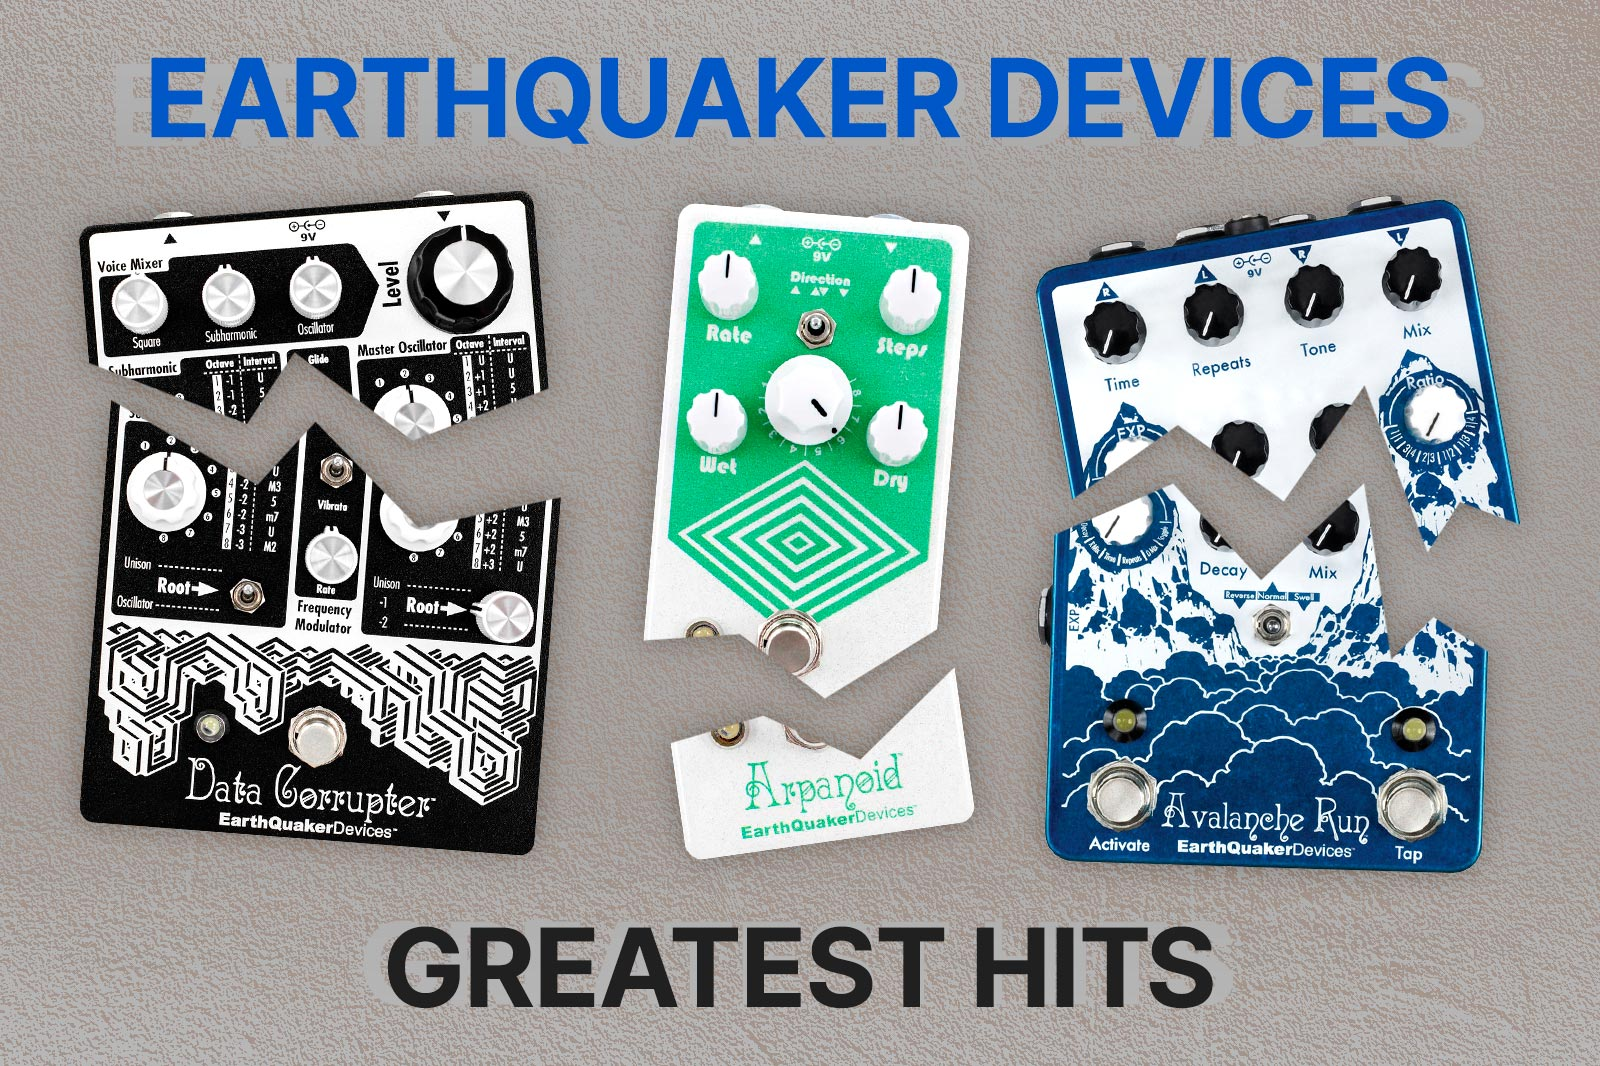 Earthquaker Devices: Greatest Hits